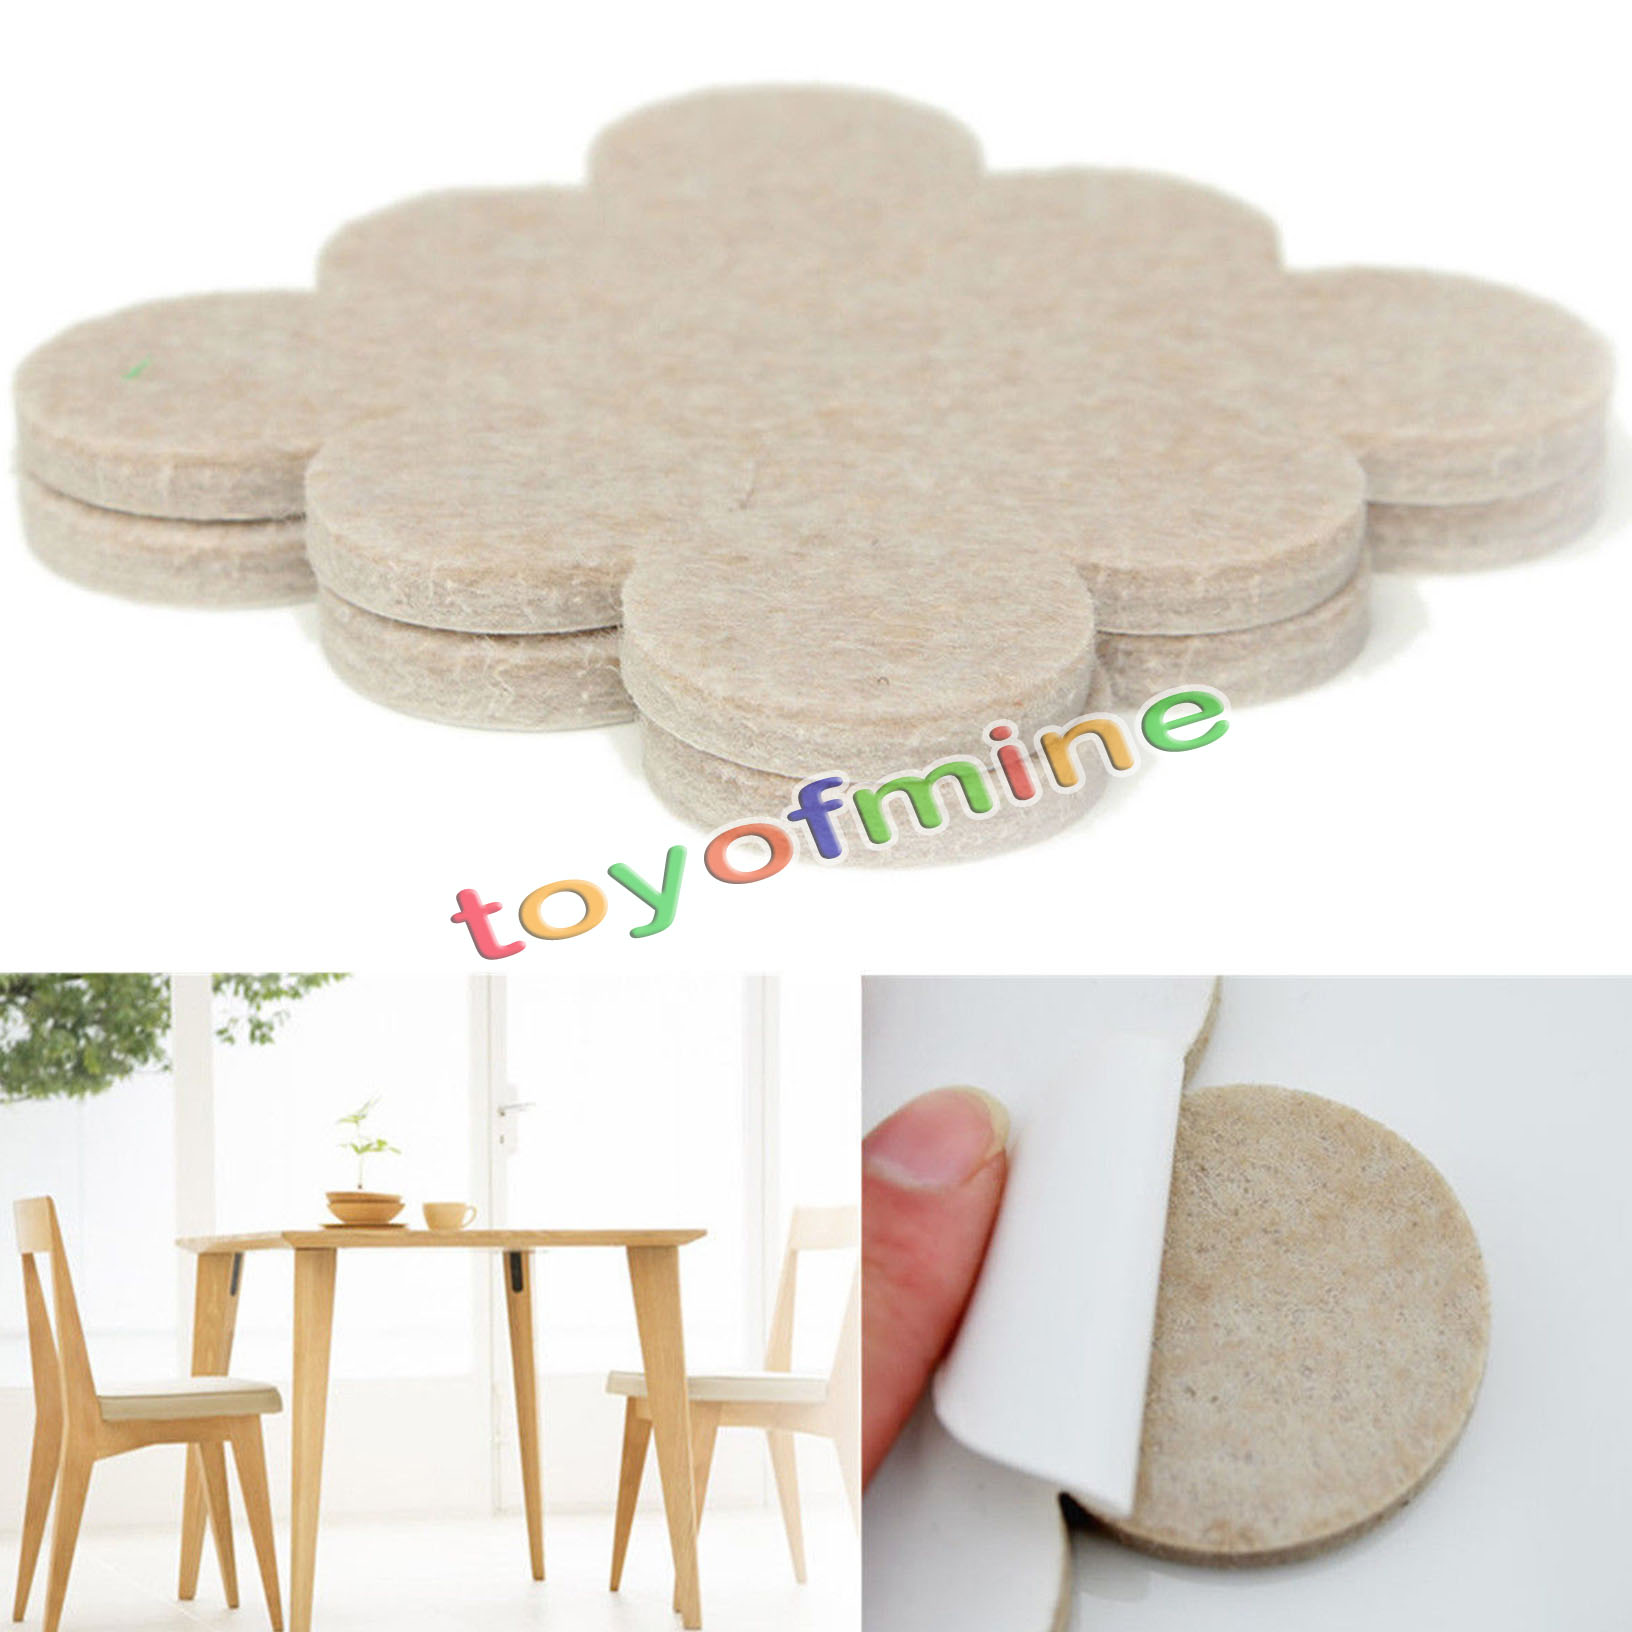 Kitchen Chairs Scratch Wood Floor: 18PCS Self Adhesive Floor Furniture Wall Chair Scratch